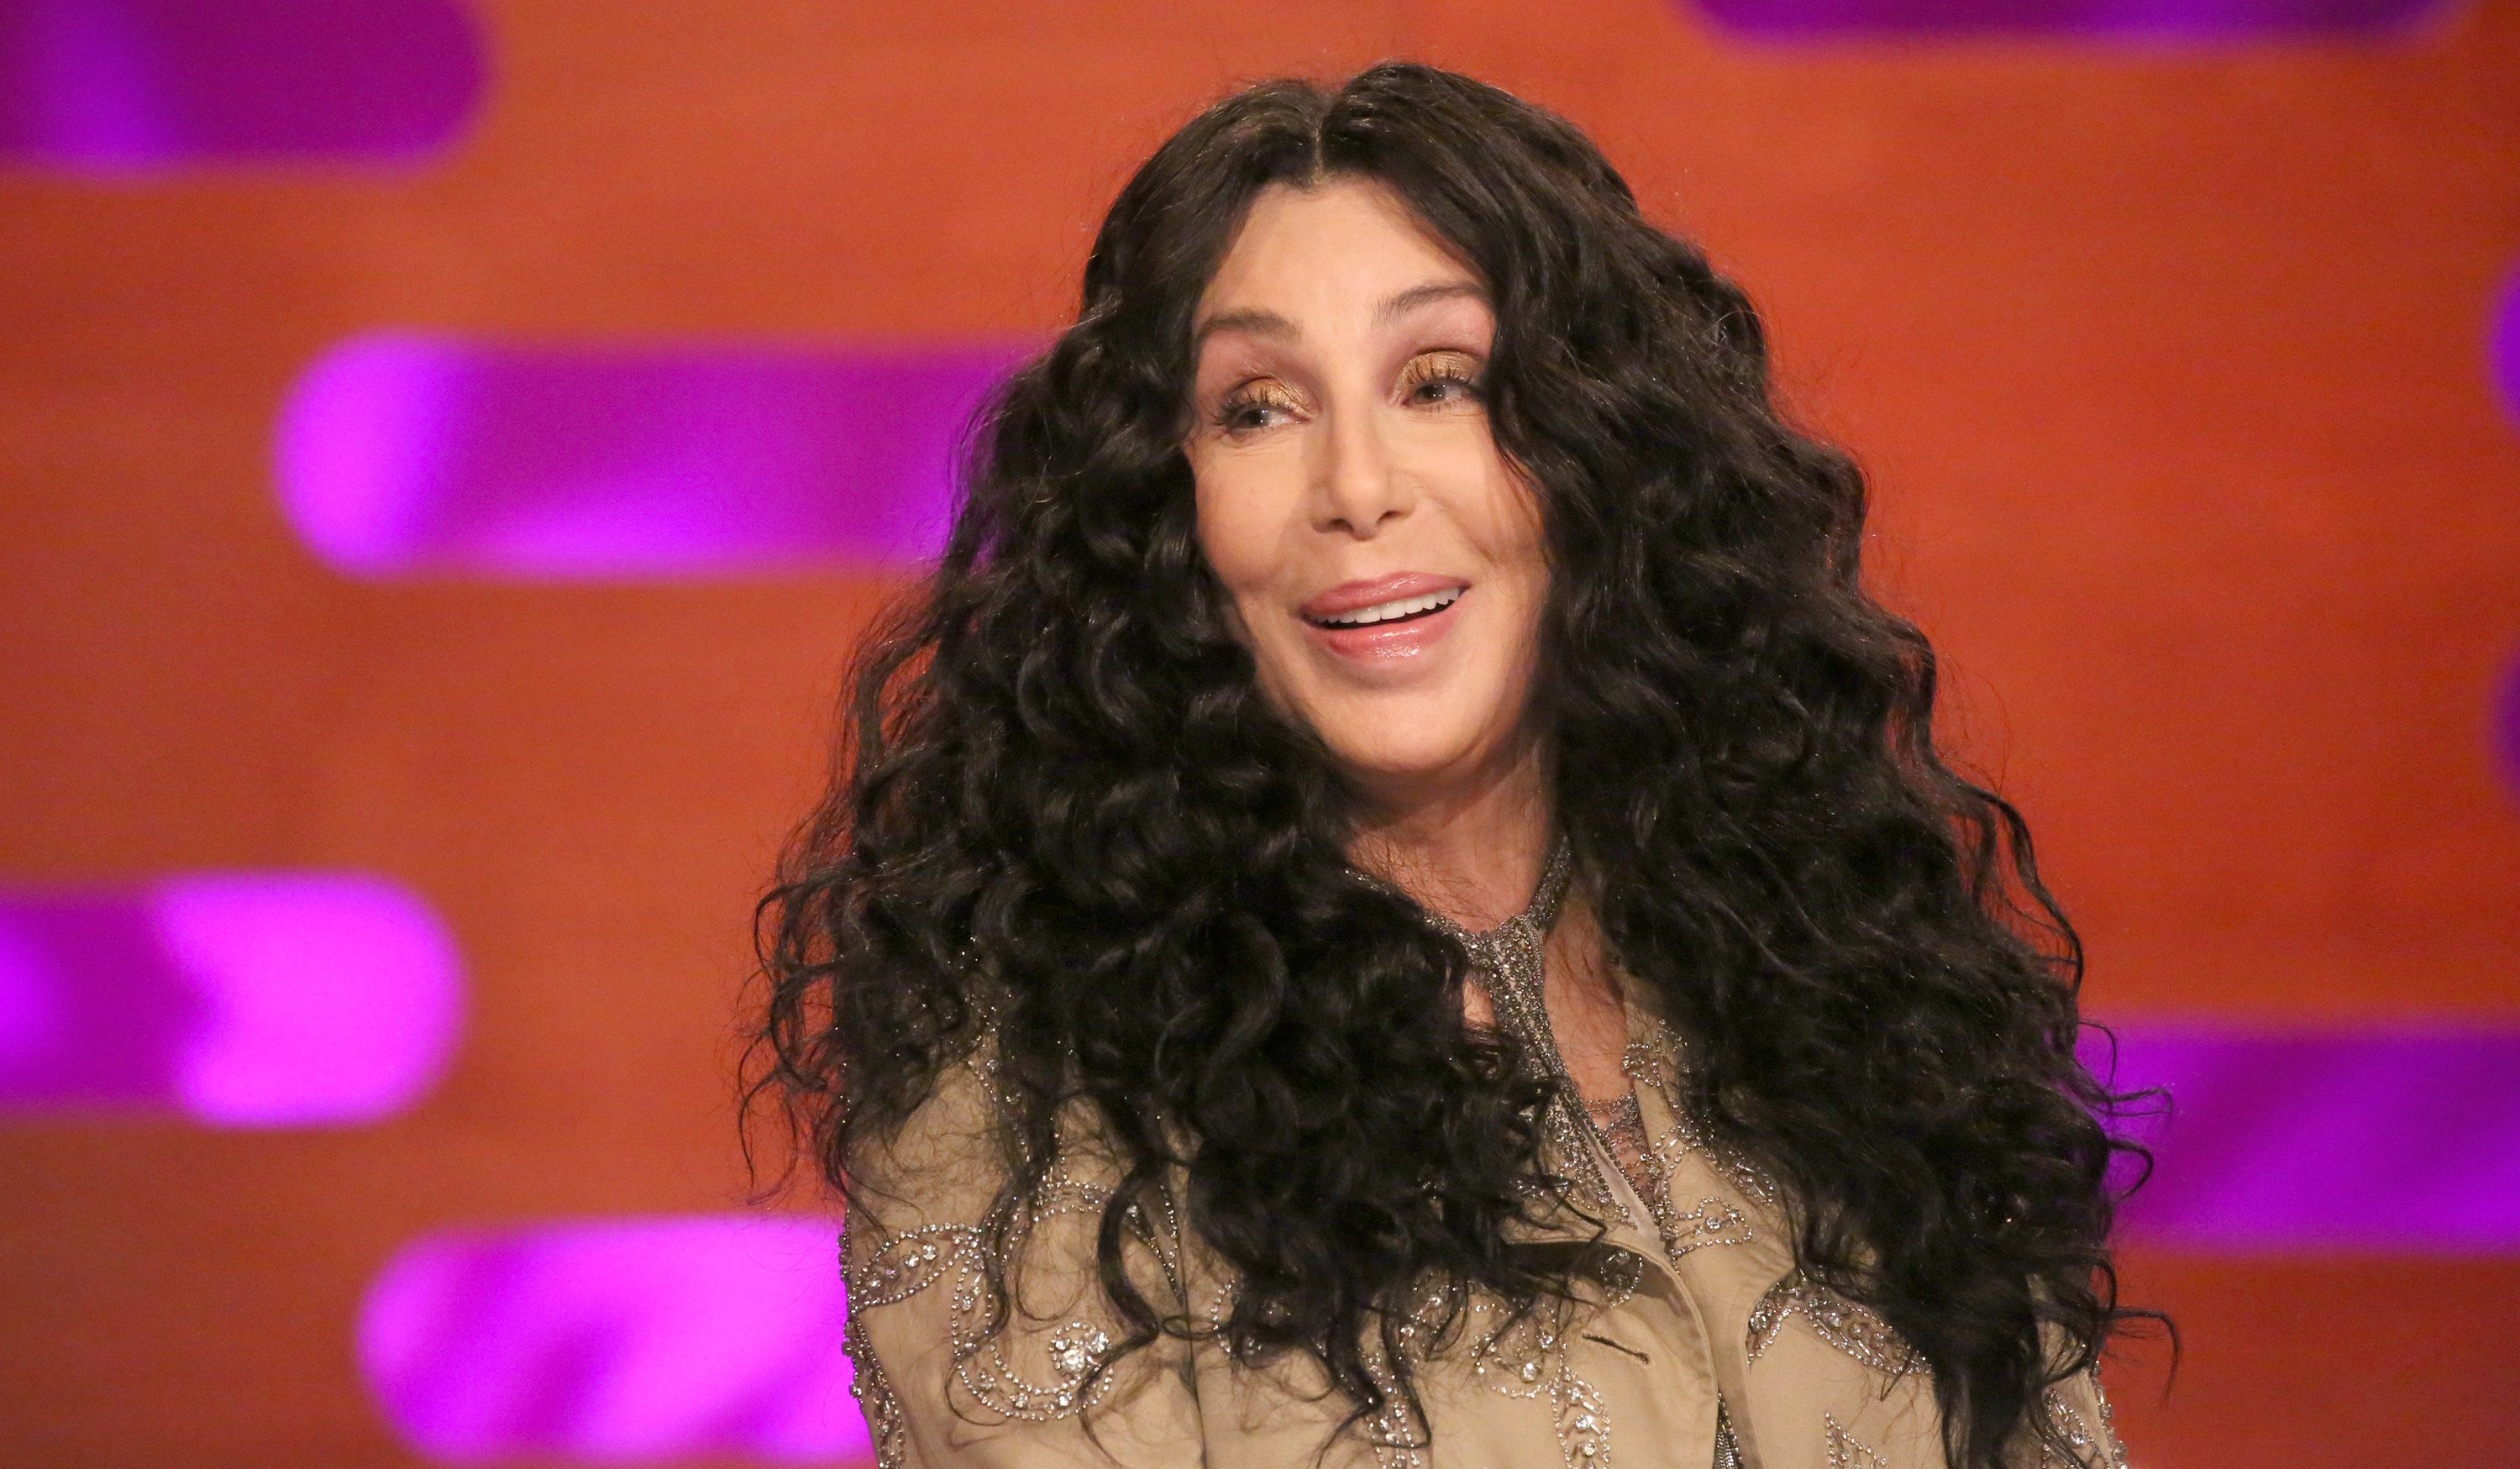 Cher during the filming of the Graham Norton Show at BBC Studioworks 6 Television Centre, Wood Lane, London, to be aired on BBC One on Friday evening.